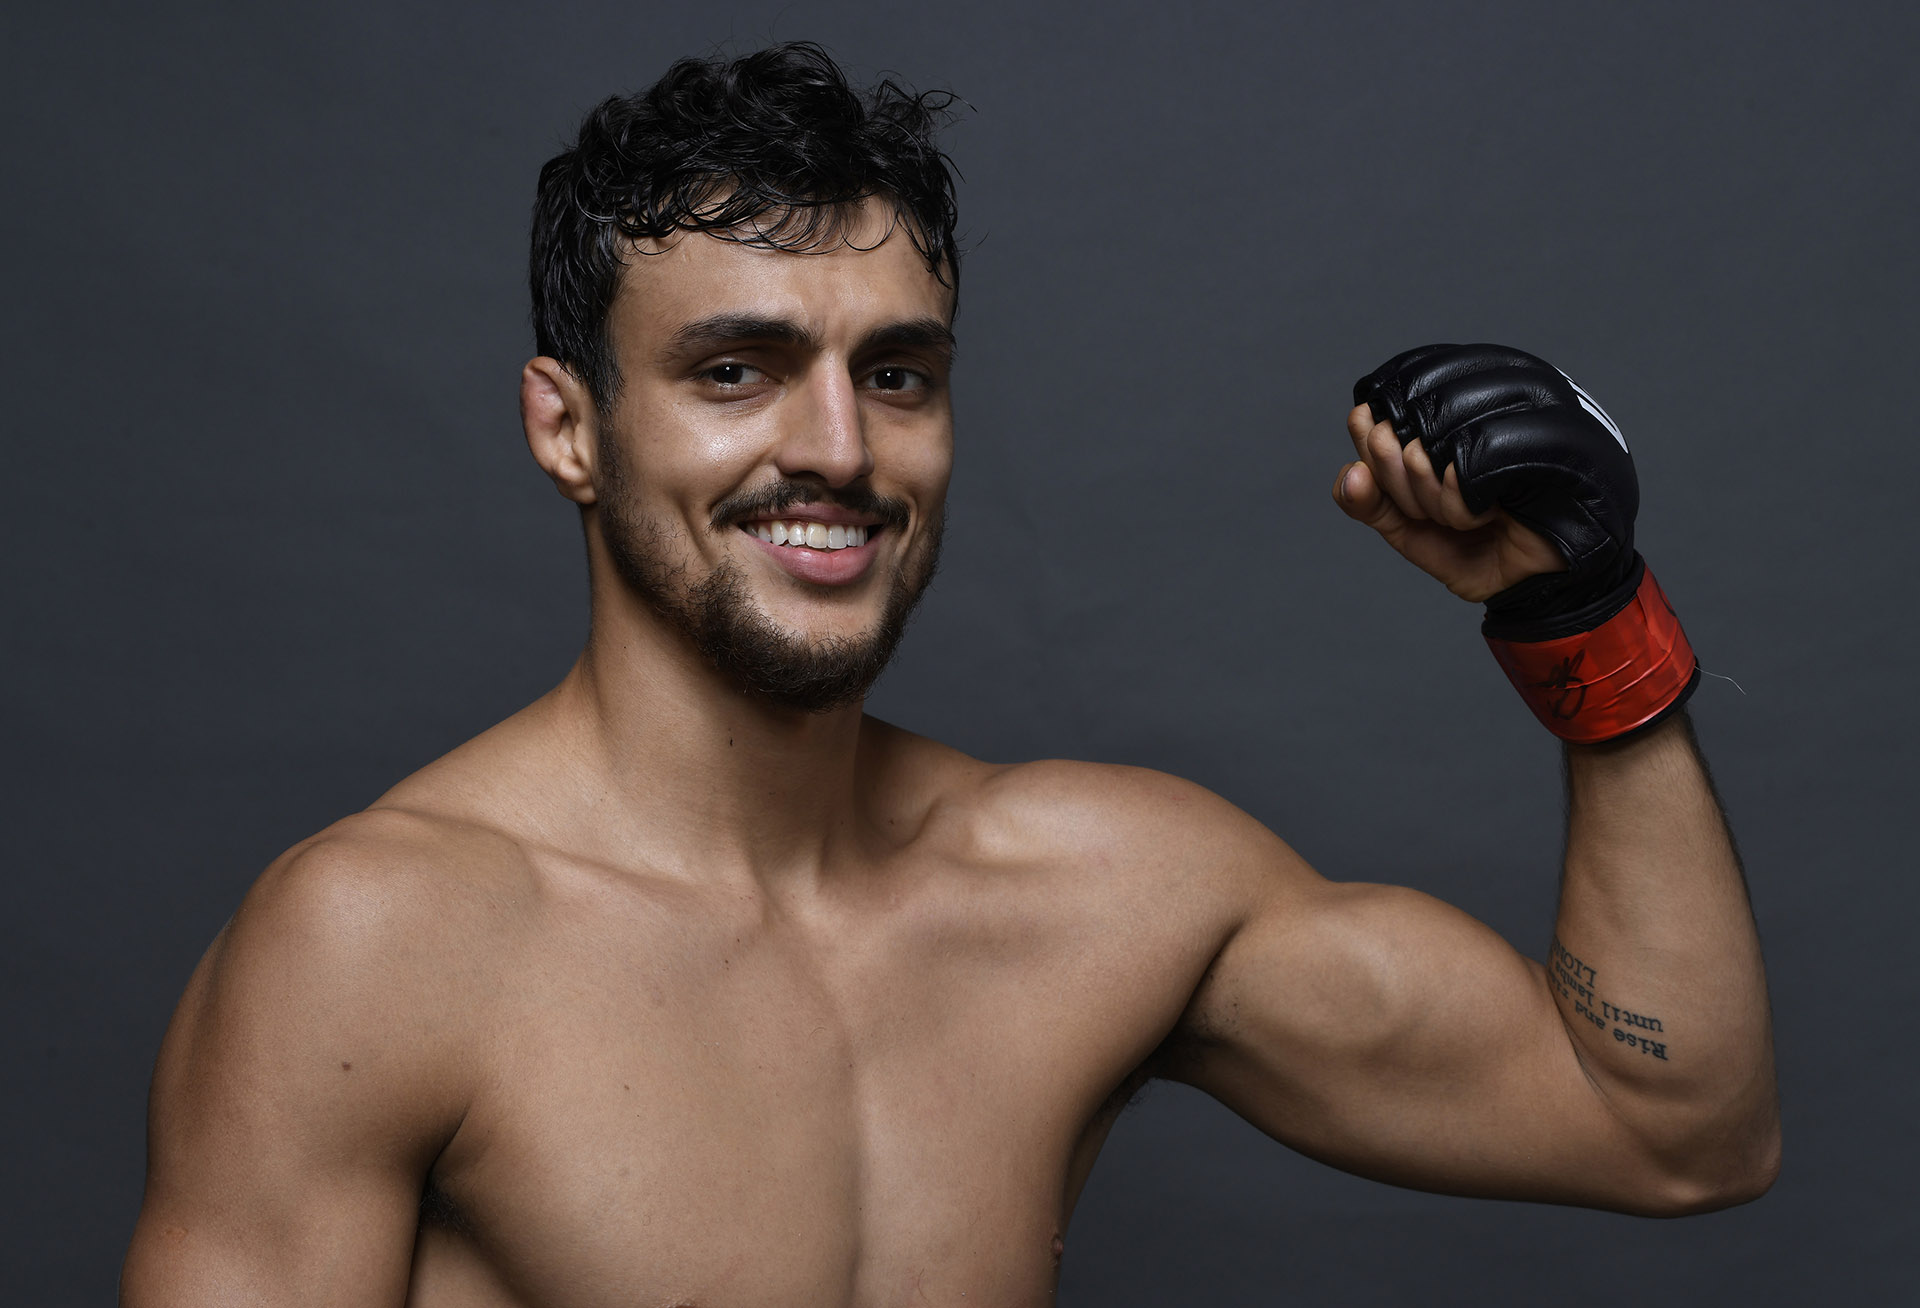 Ricardo Ramos of Brazil poses for a portrait backstage after his victory during the UFC Fight Night event at Ibirapuera Gymnasium on November 16, 2019 in Sao Paulo, Brazil. (Photo by Mike Roach/Zuffa LLC)